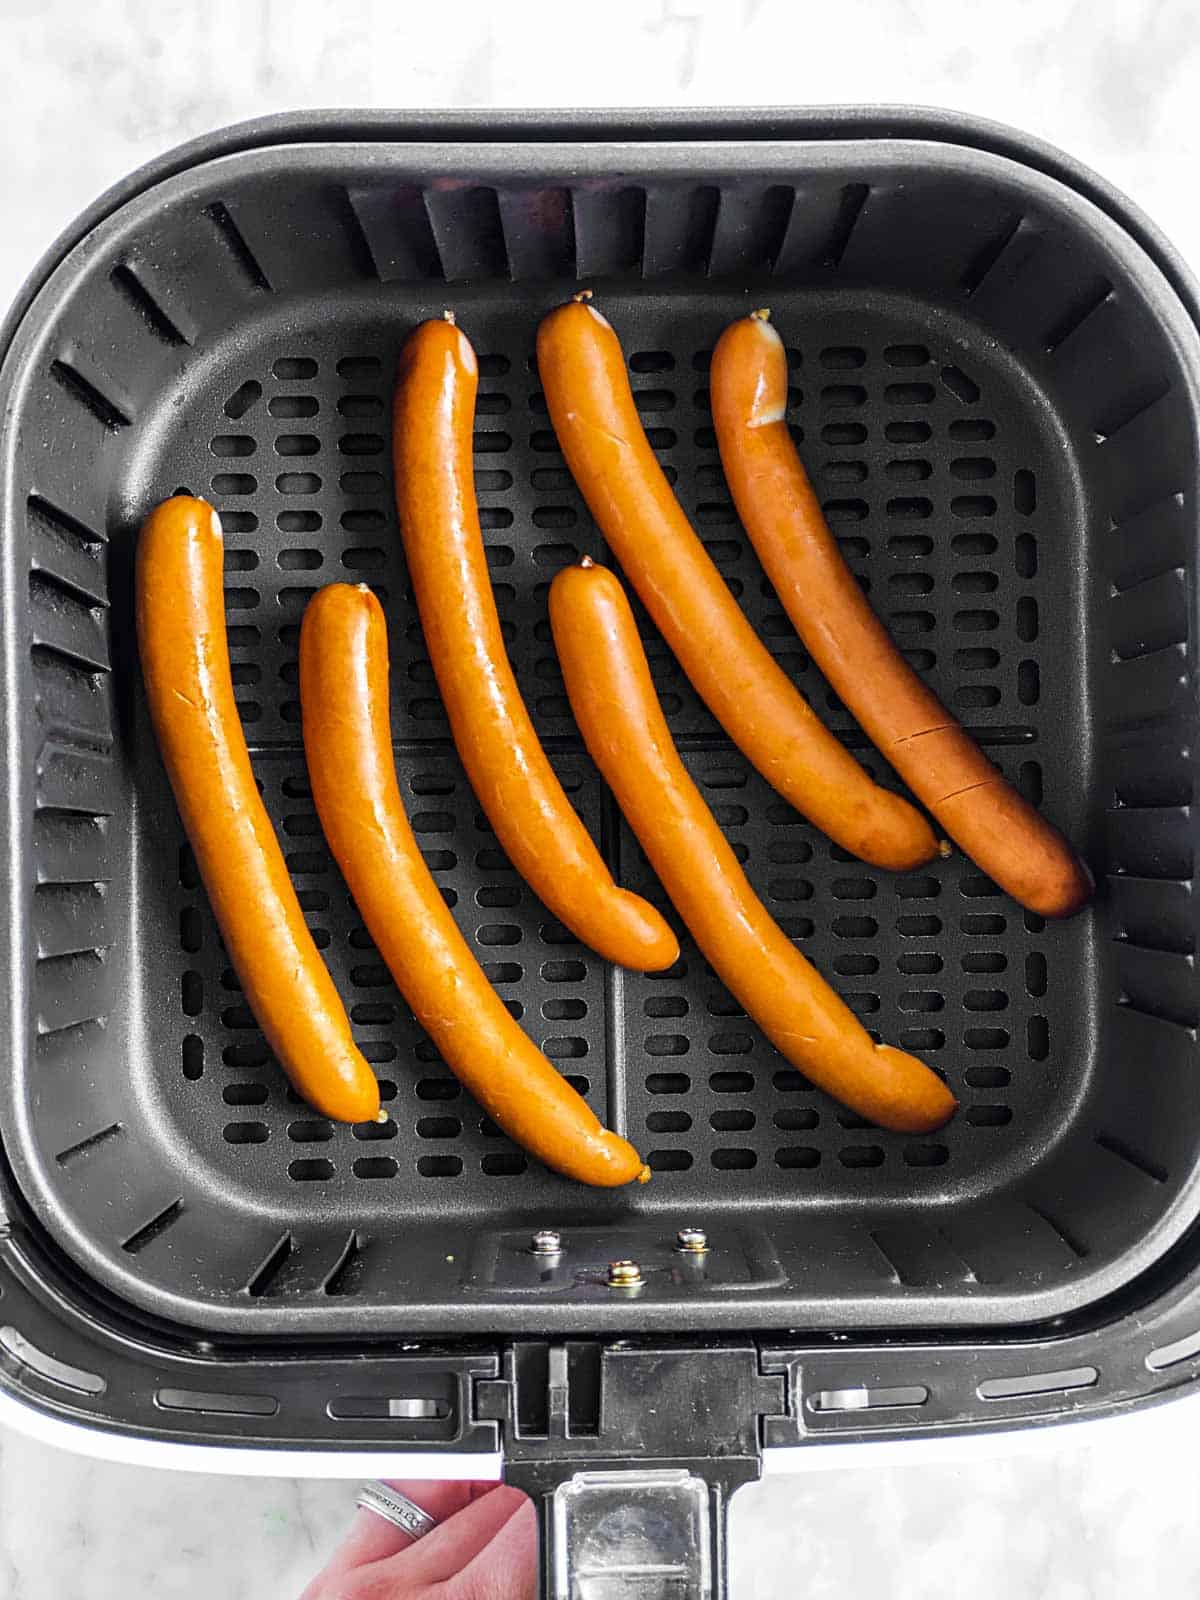 six uncooked hot dogs in air fryer basket